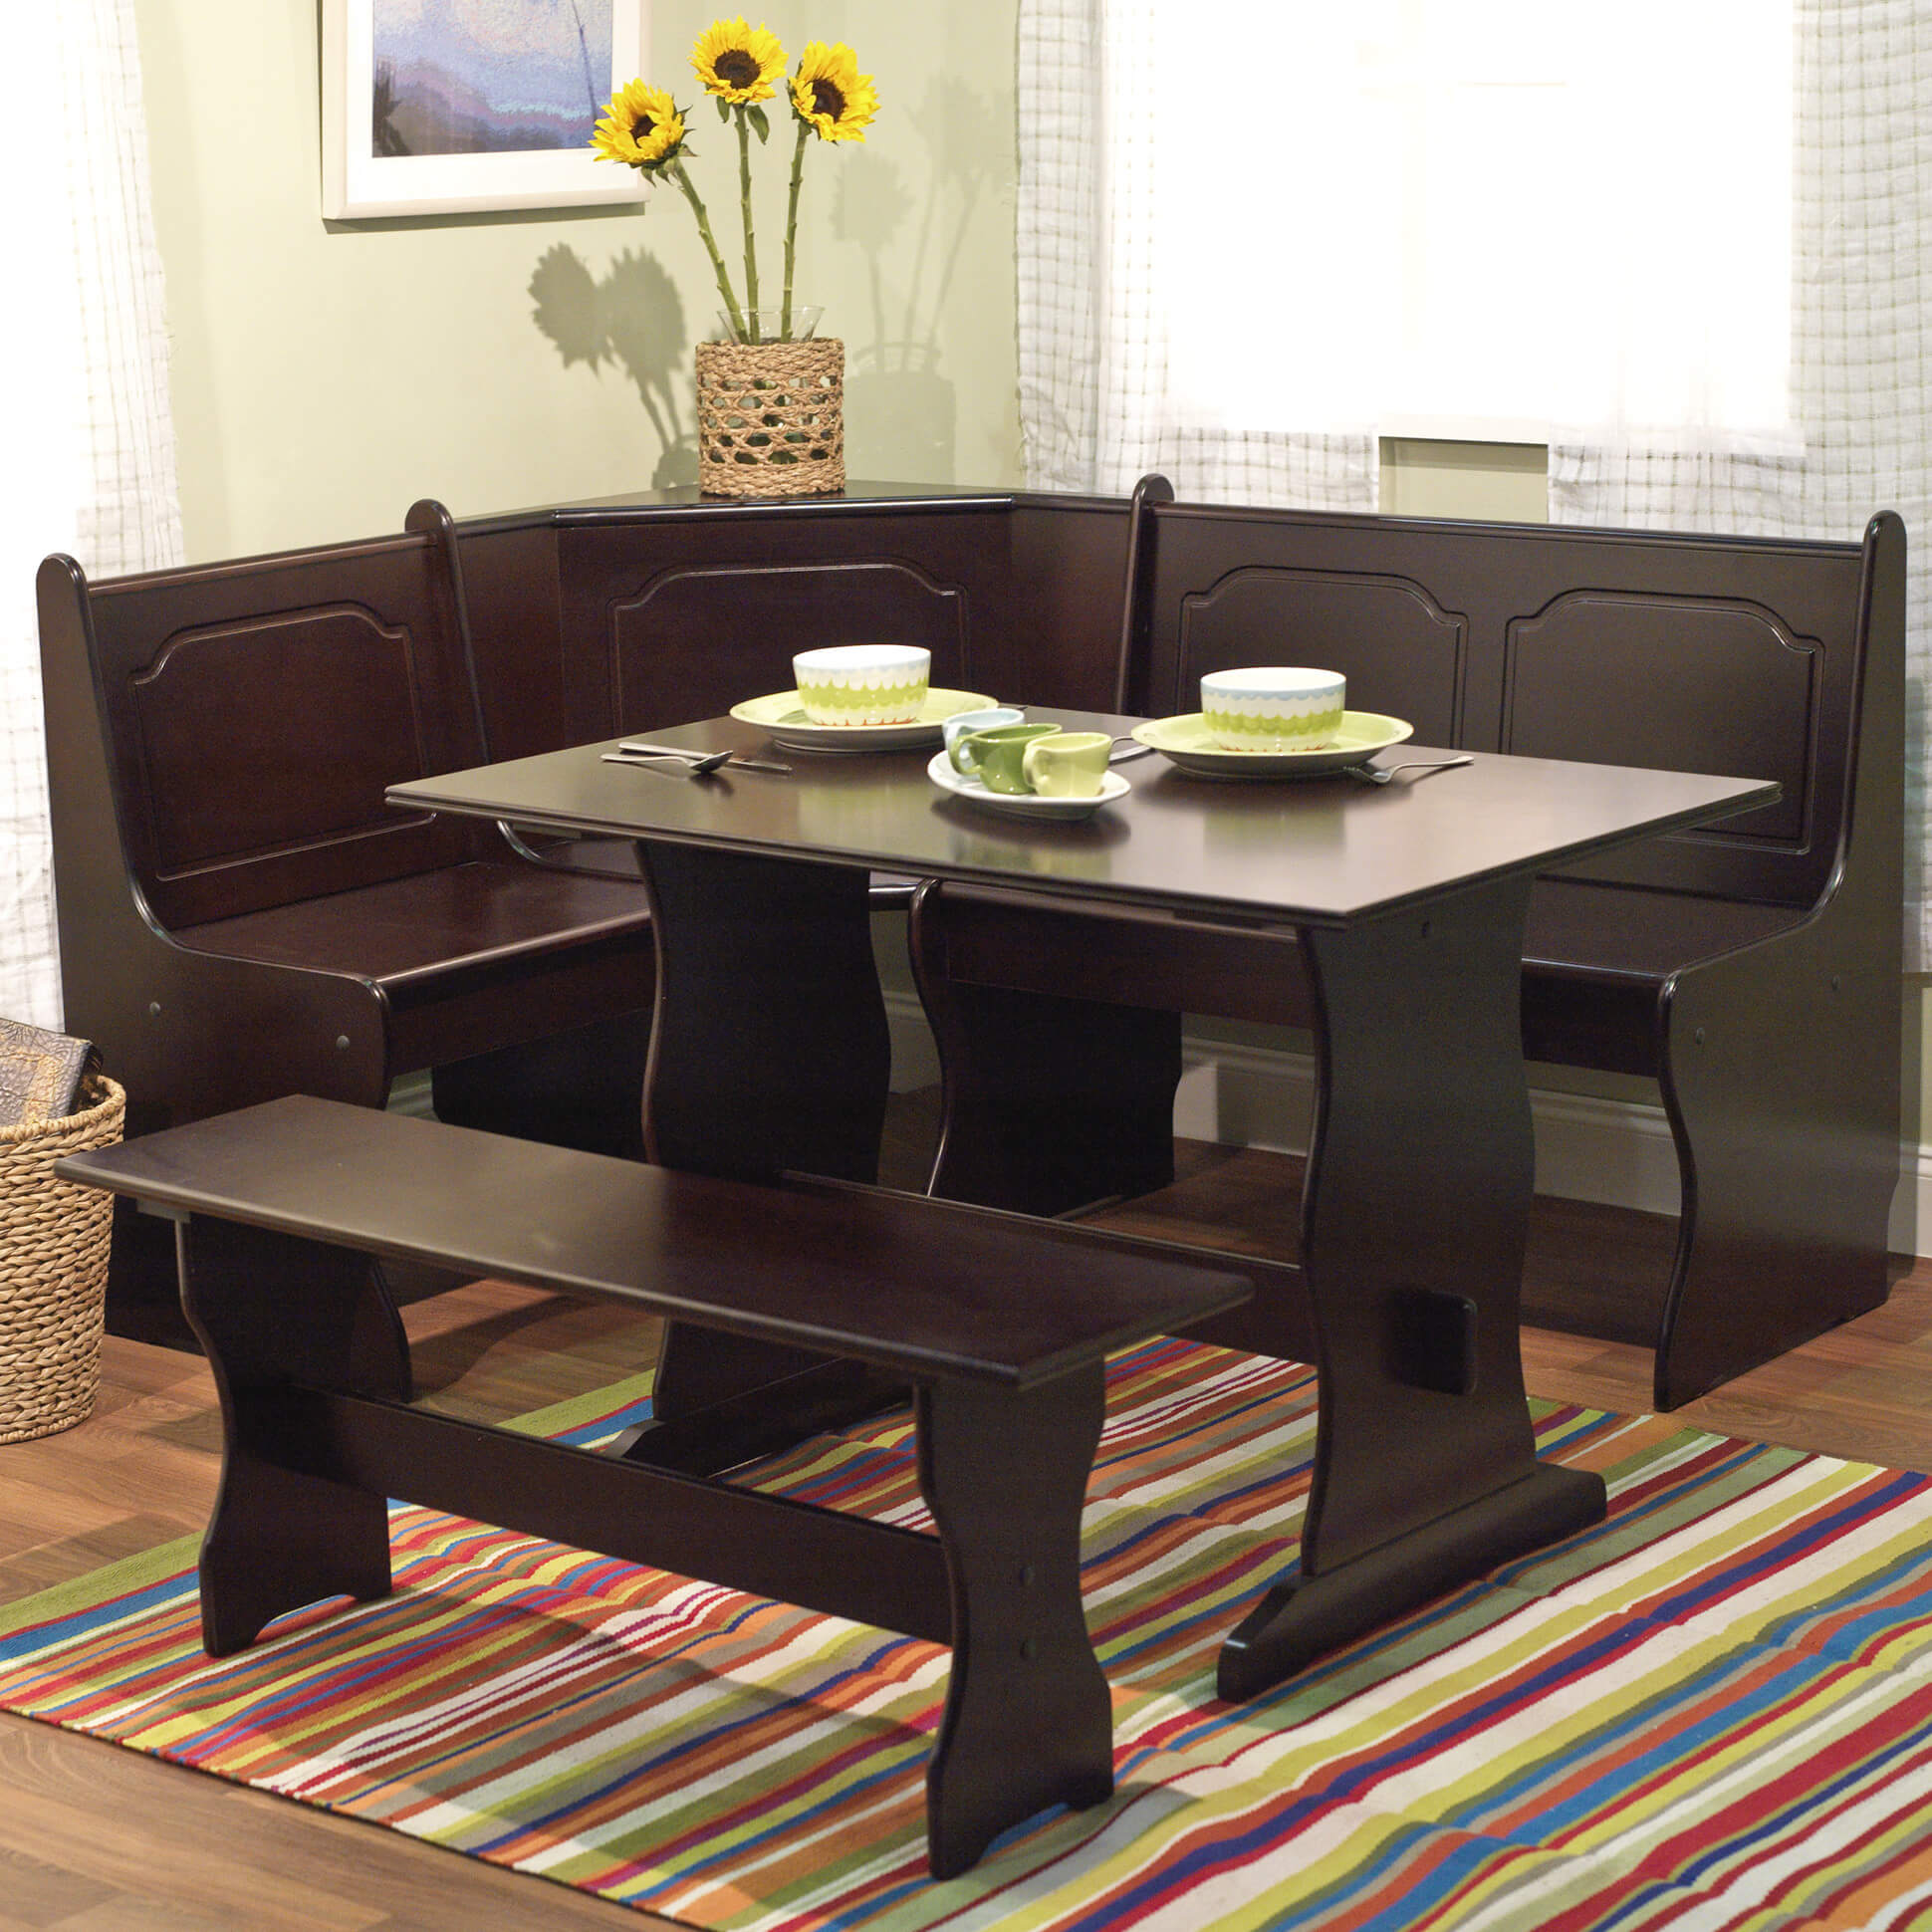 kitchen table nook rustic round wow 30 space saving corner breakfast furniture sets 2019 tms